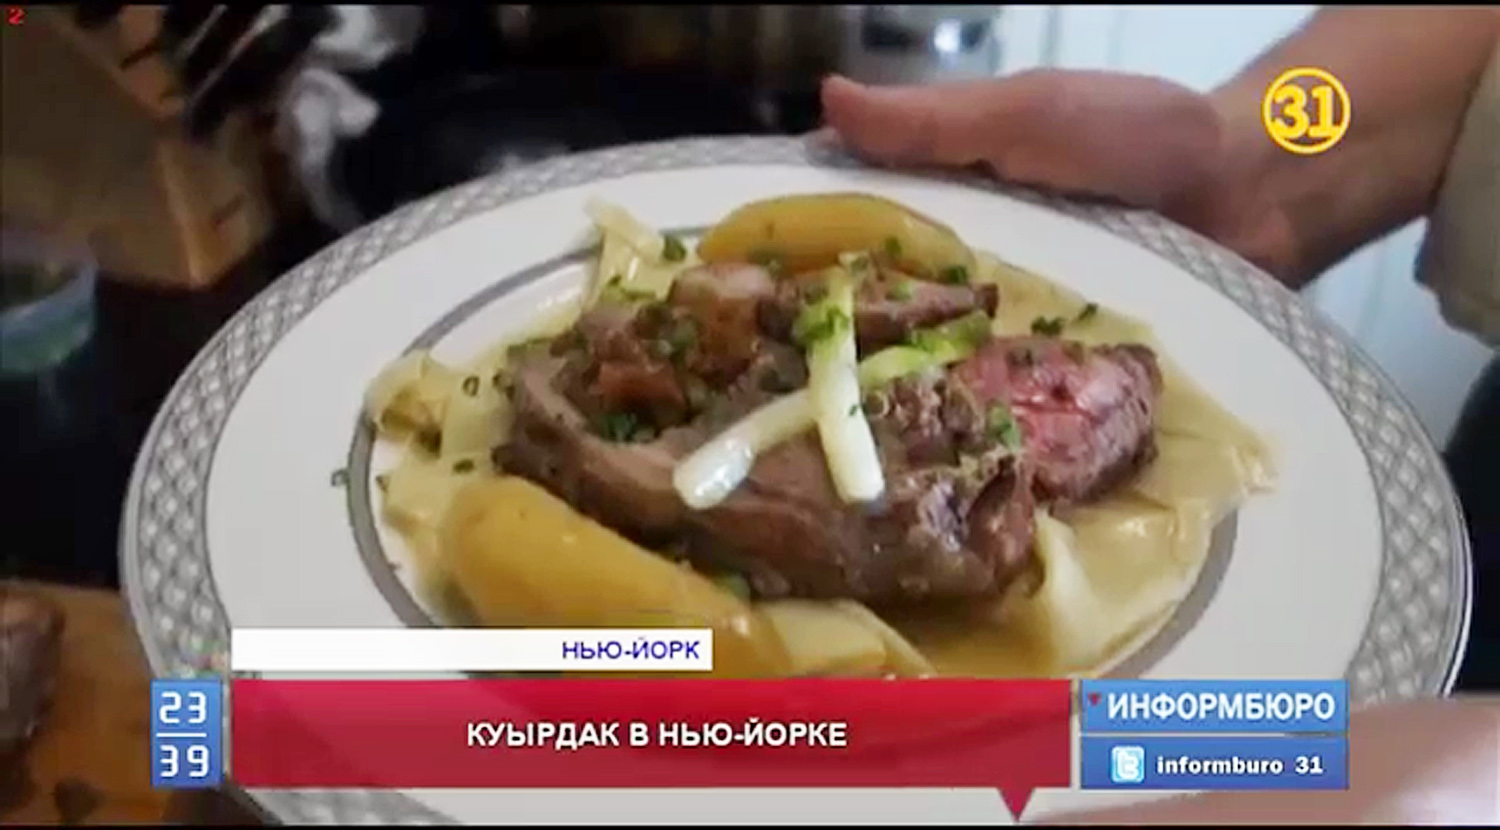 Kazakh Channel 31